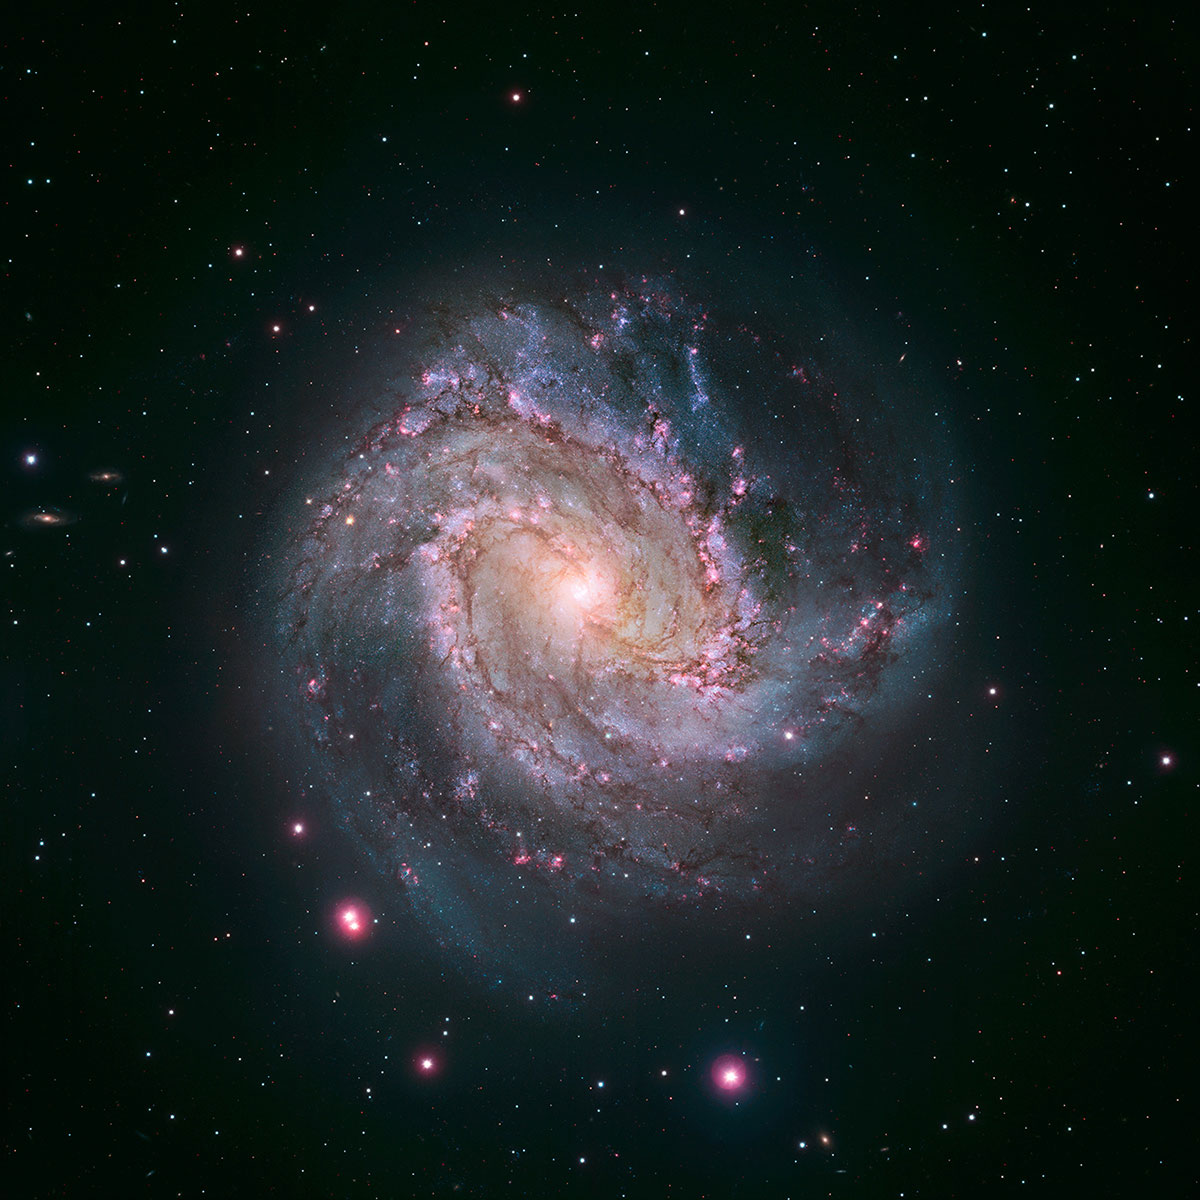 The barred spiral galaxy M83, also known as the Southern Pinwheel, is seen in a NASA Hubble Space Telescope mosaic released Jan. 9, 2014. The Hubble photograph captures thousands of star clusters, hundreds of thousands of individual stars, and  ghosts  of dead stars called supernova remnants.